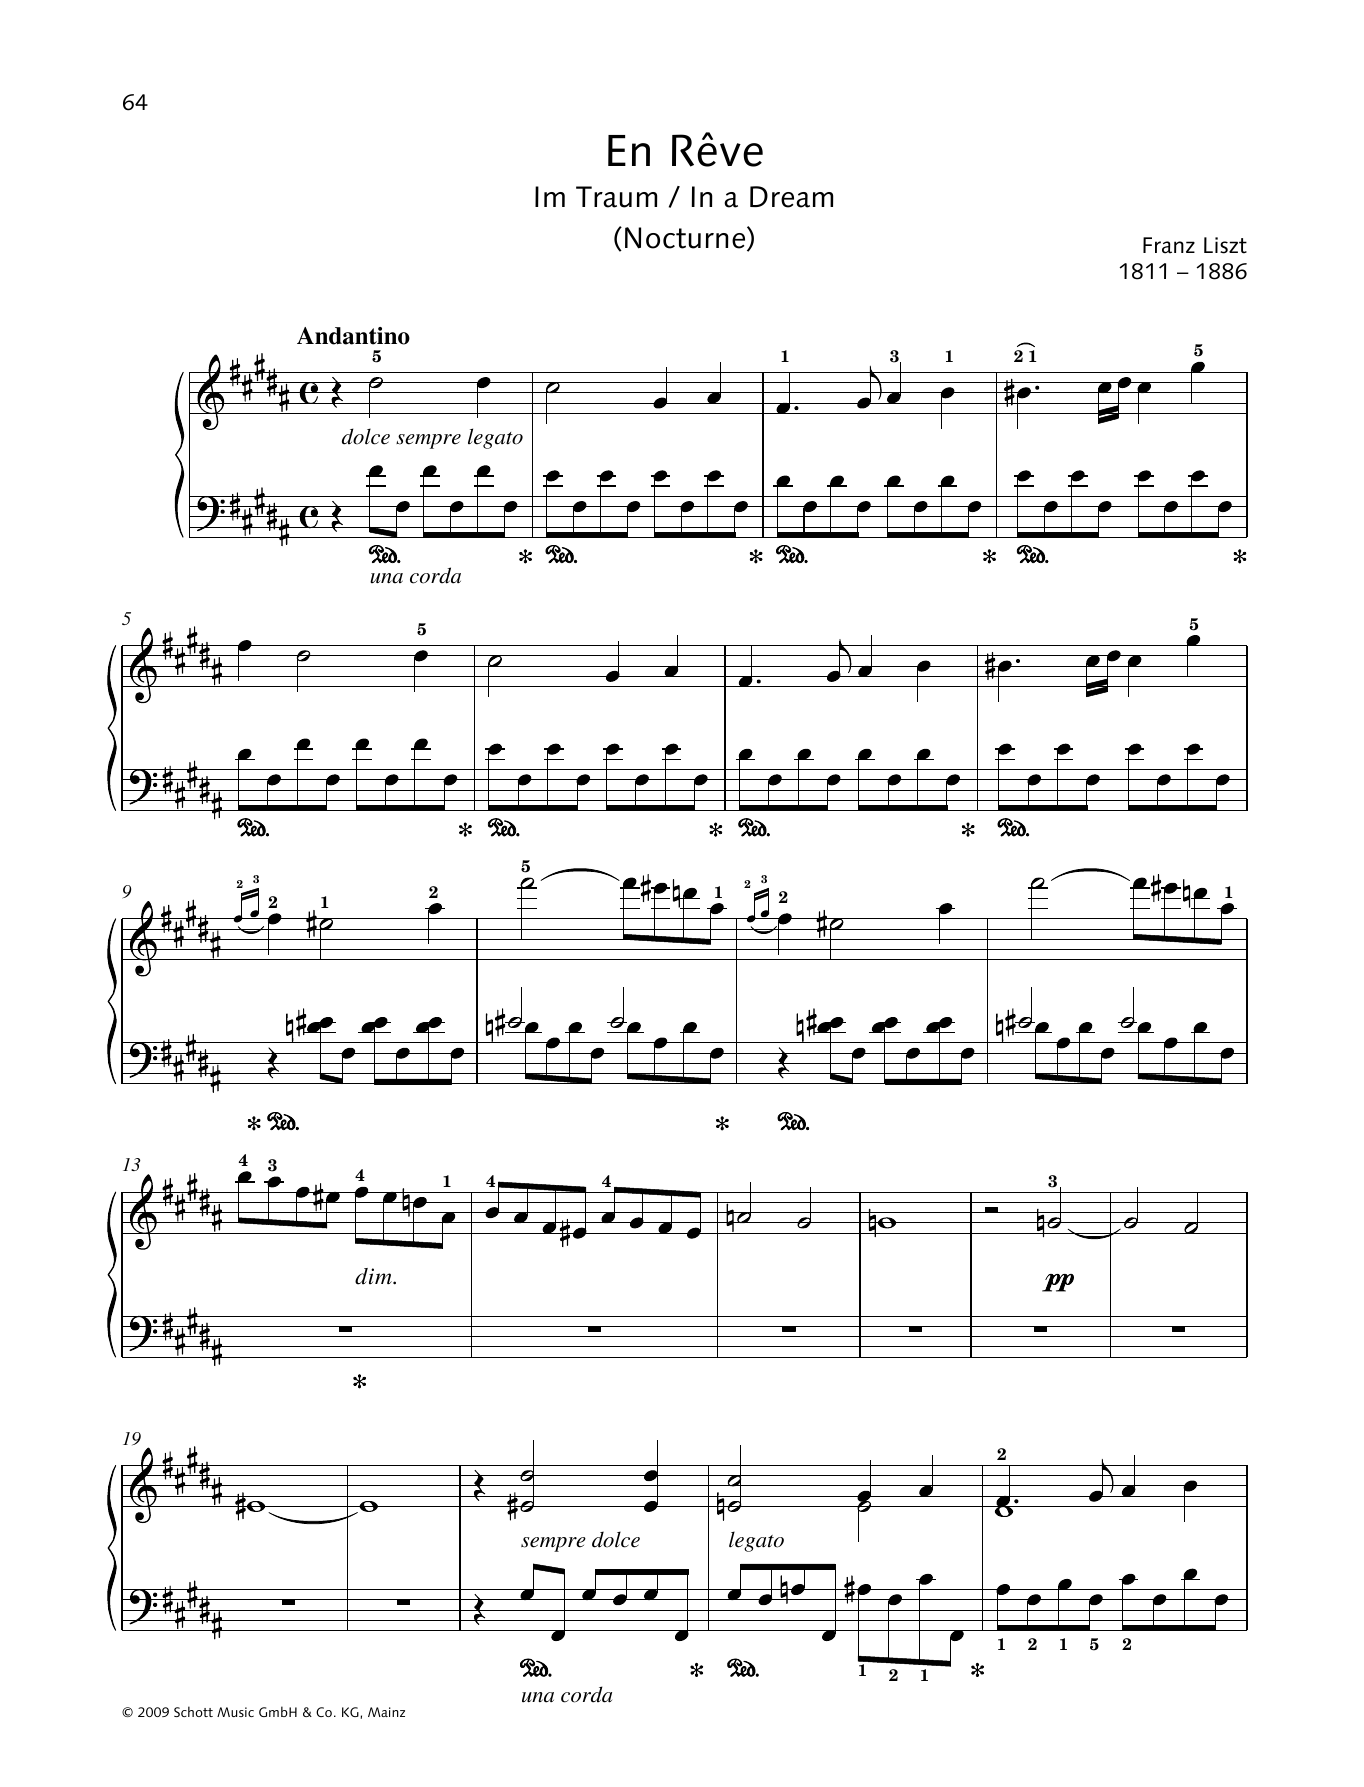 In a Dream Sheet Music